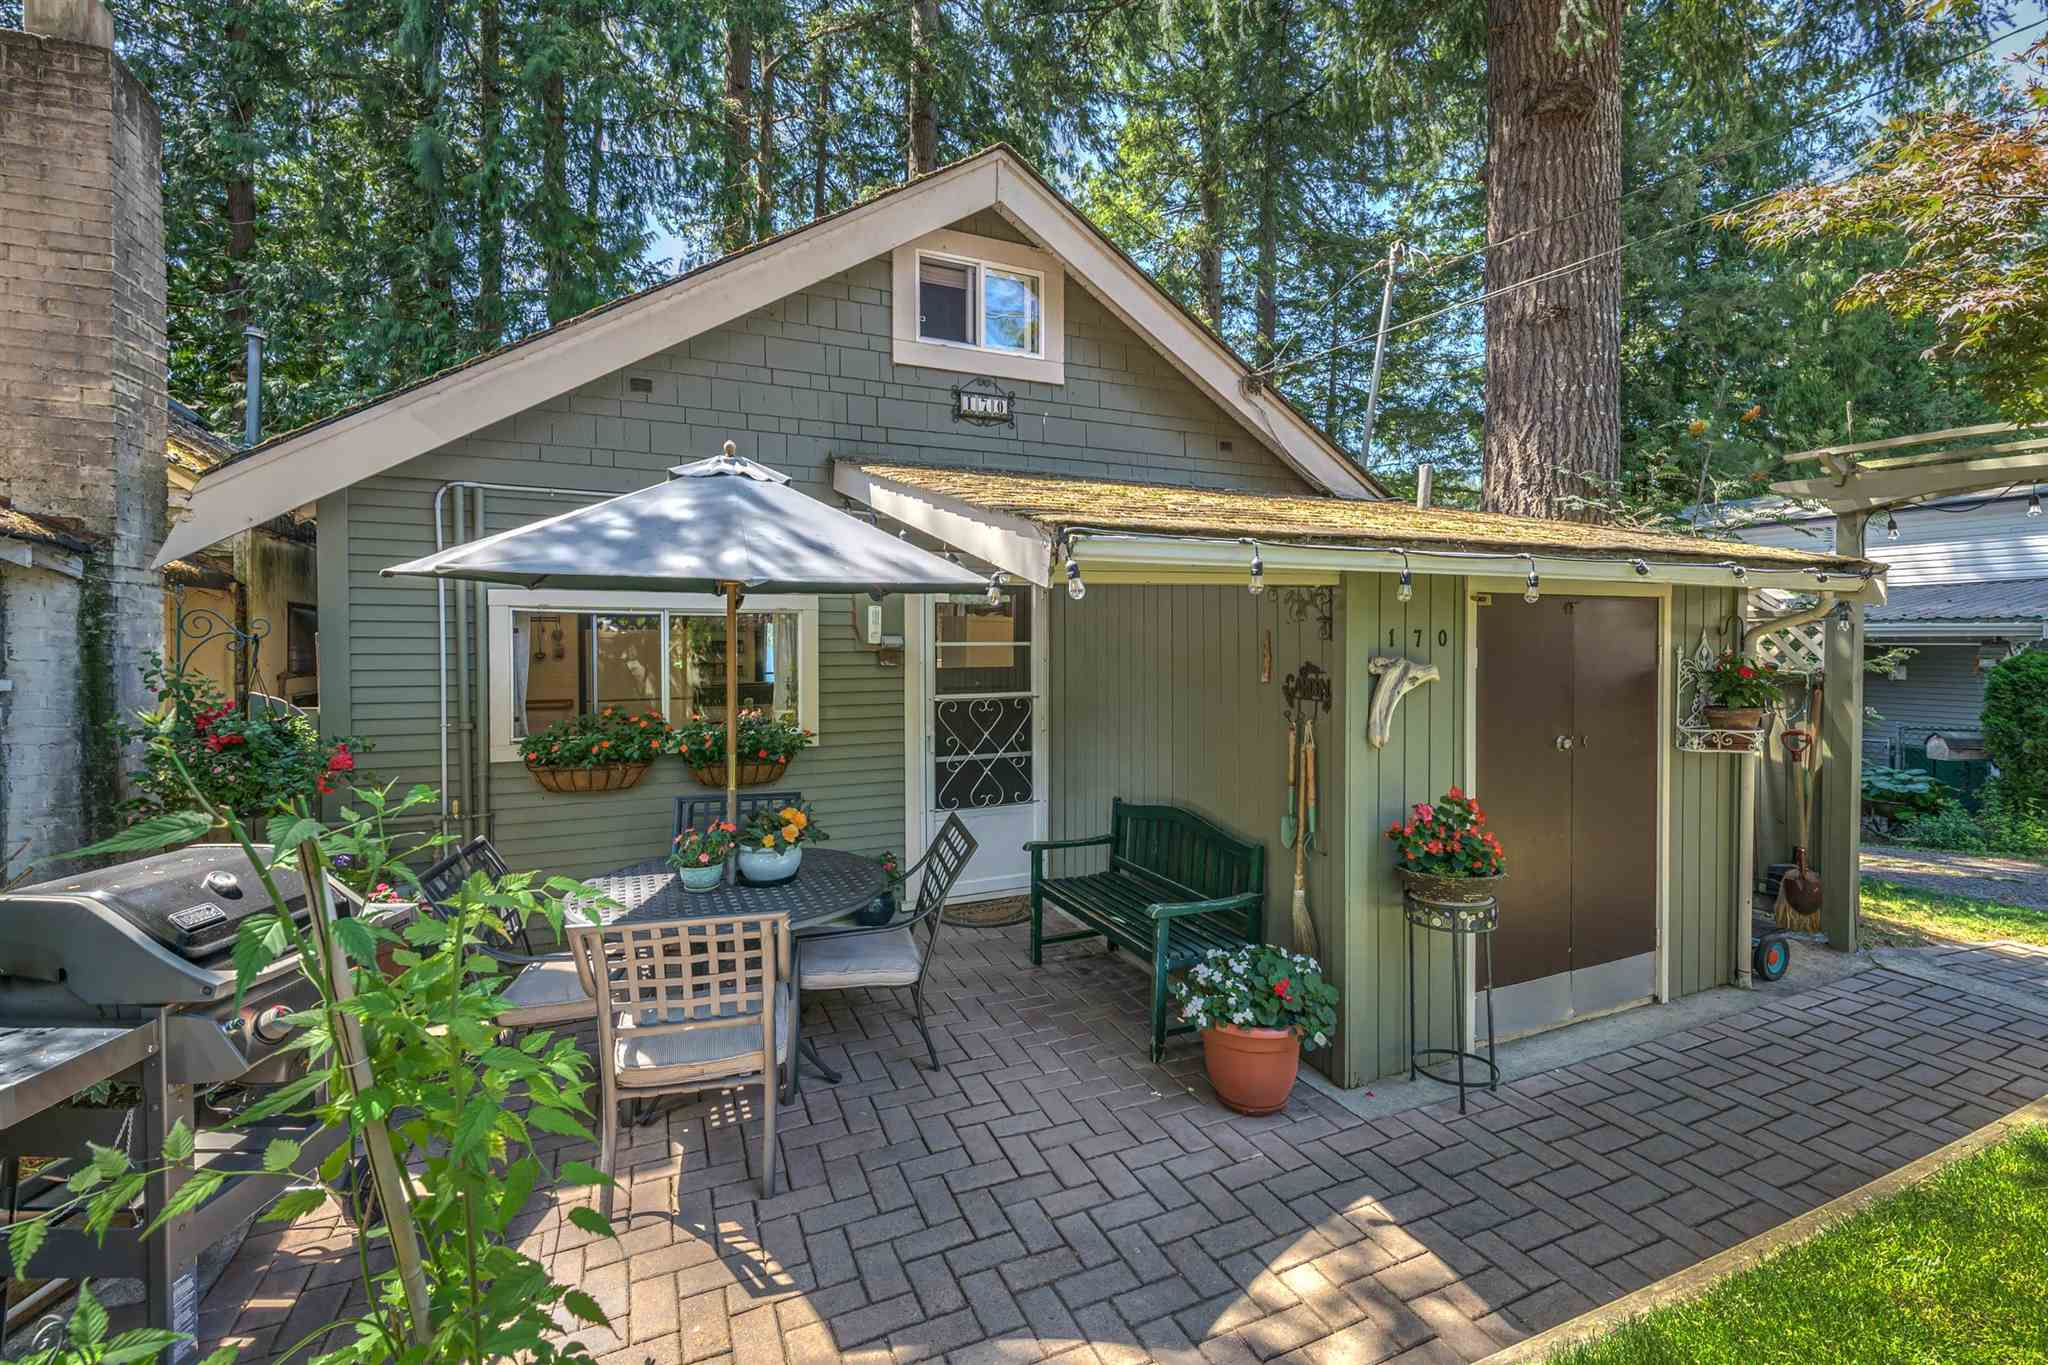 170 FIRST AVENUE - Cultus Lake House/Single Family for sale, 2 Bedrooms (R2605487) - #1